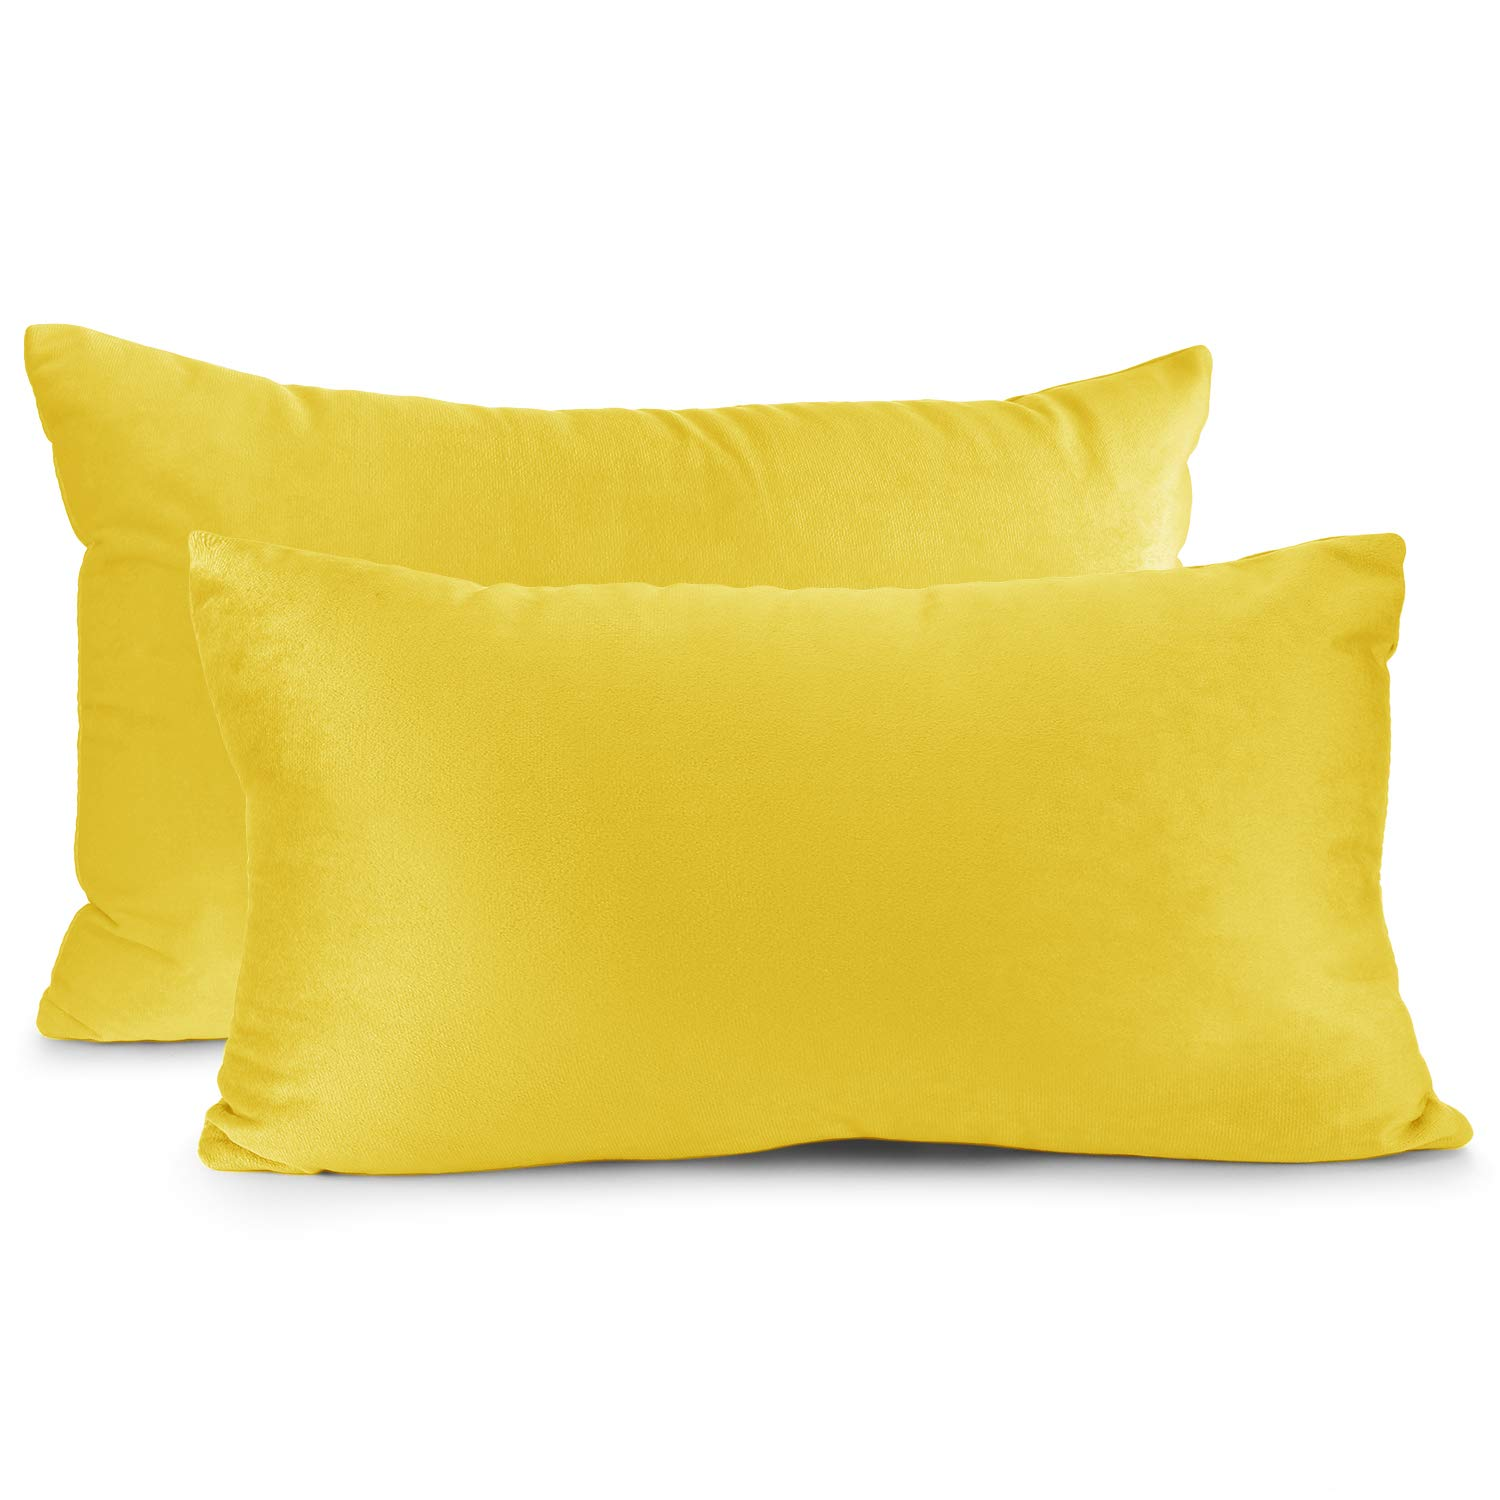 """Nestl Bedding Throw Pillow Cover 12"""" x 20"""" Soft Square Decorative Throw Pillow Covers Cozy Velvet Cushion Case for Sofa Couch Bedroom, Set of 2, Yellow"""